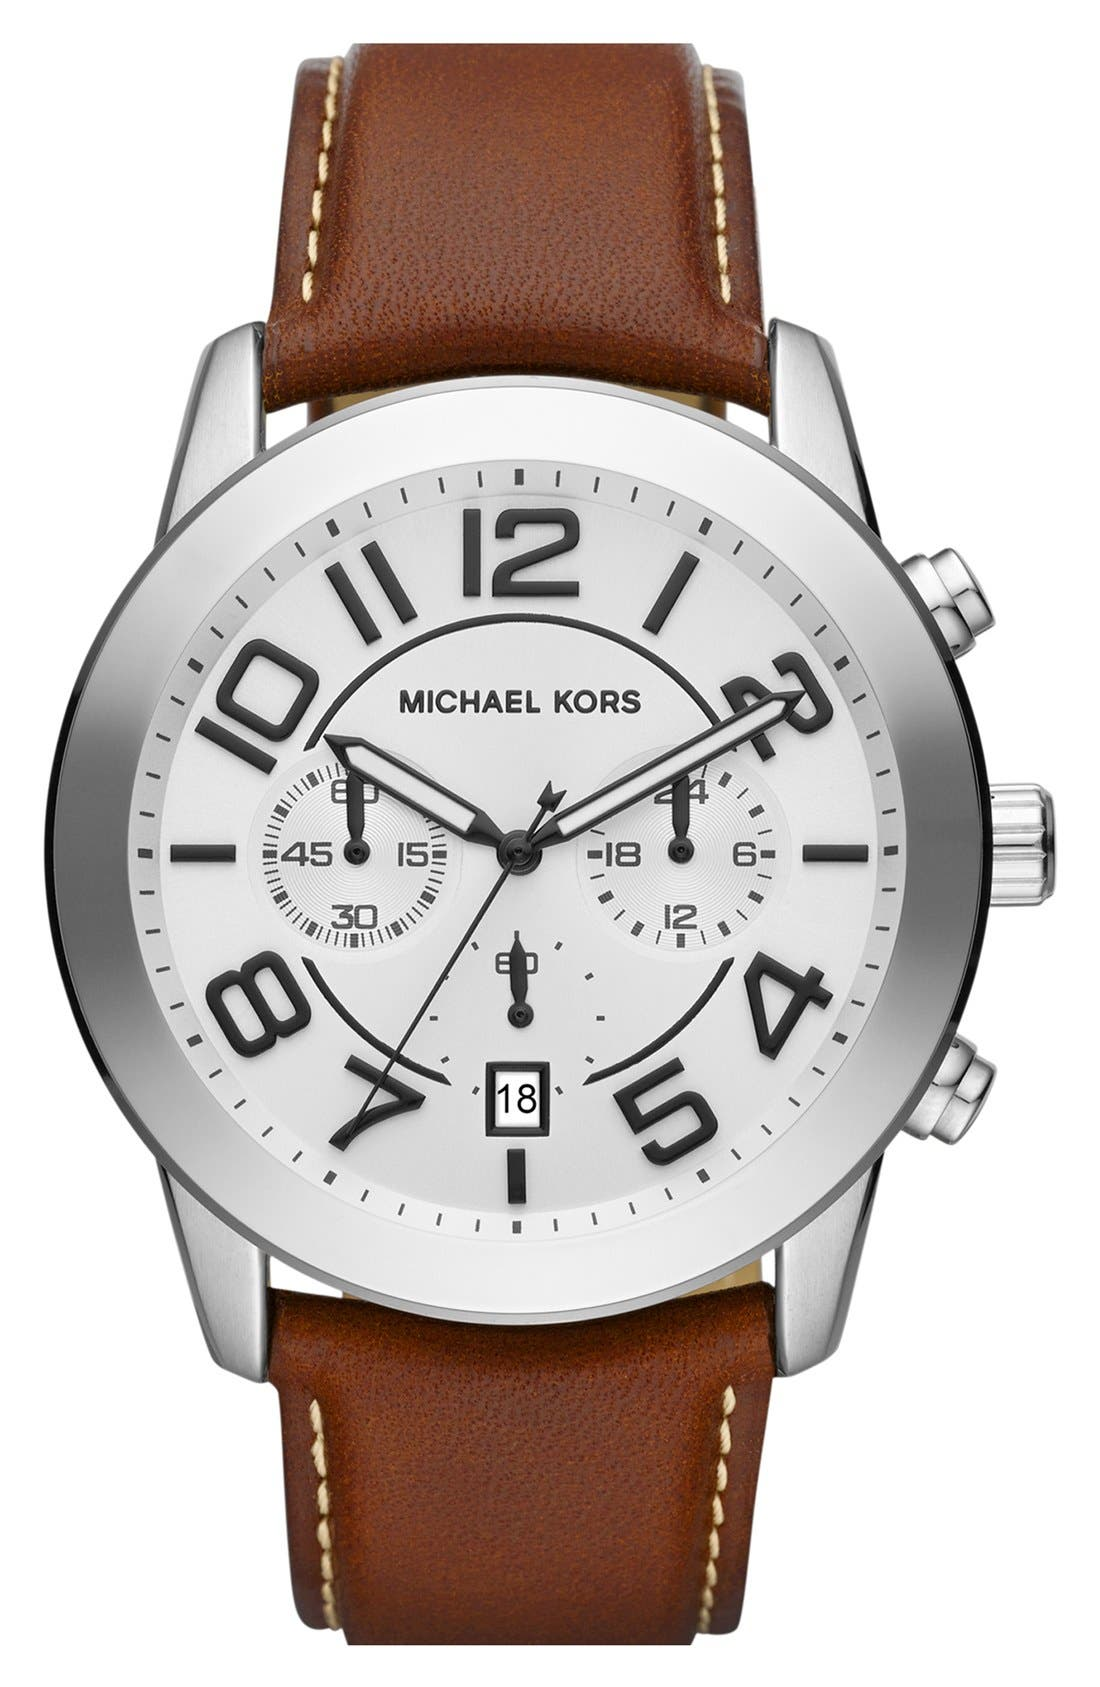 Main Image - Michael Kors 'Mercer' Large Chronograph Leather Strap Watch, 45mm